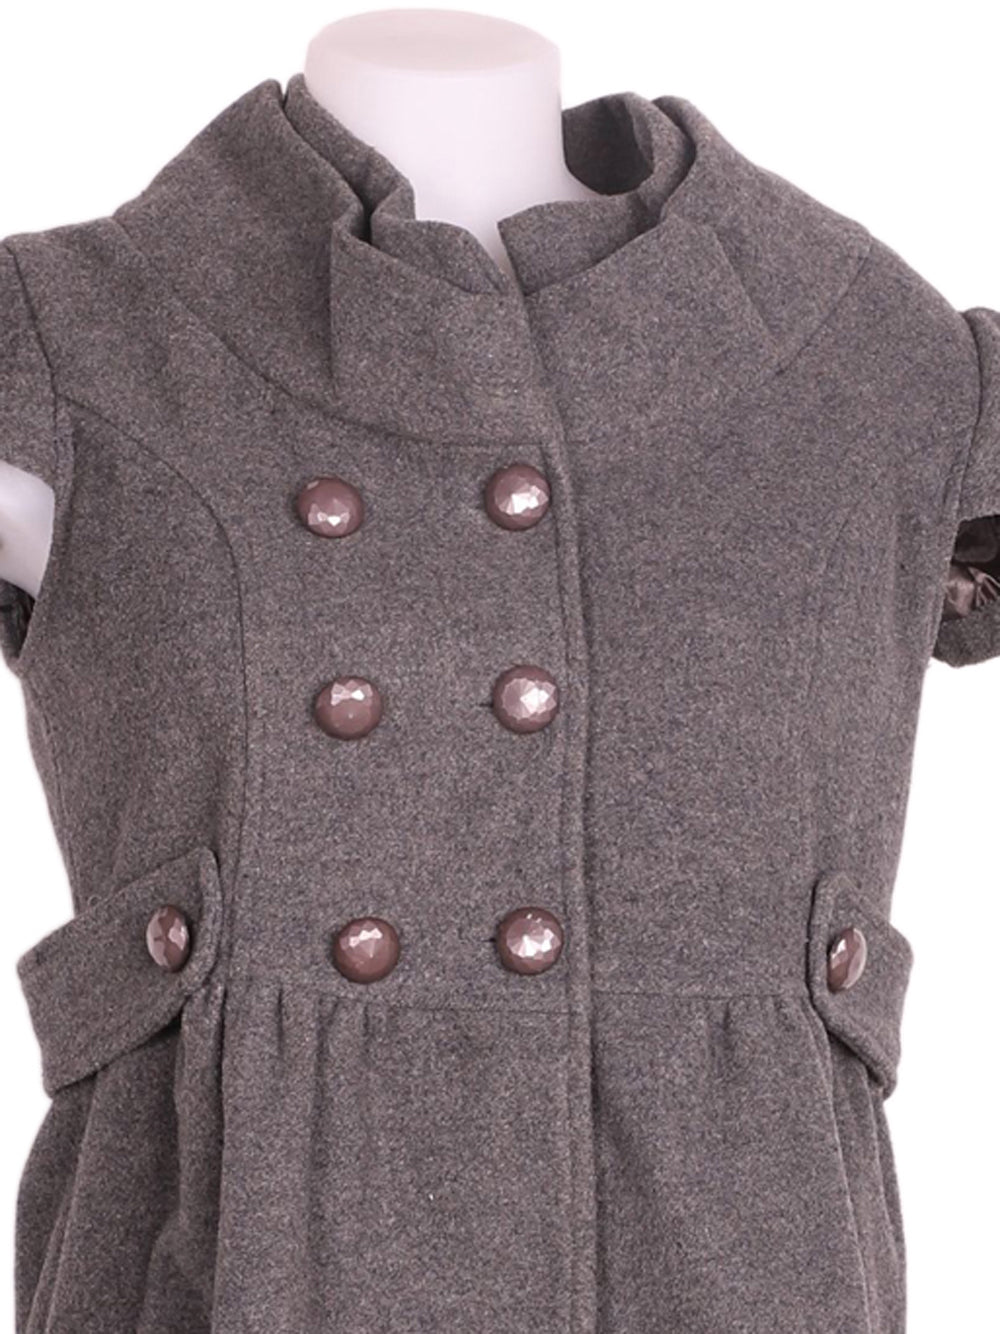 Detail photo of Preloved TSega Grey Woman's sleeveless jacket - size 10/M